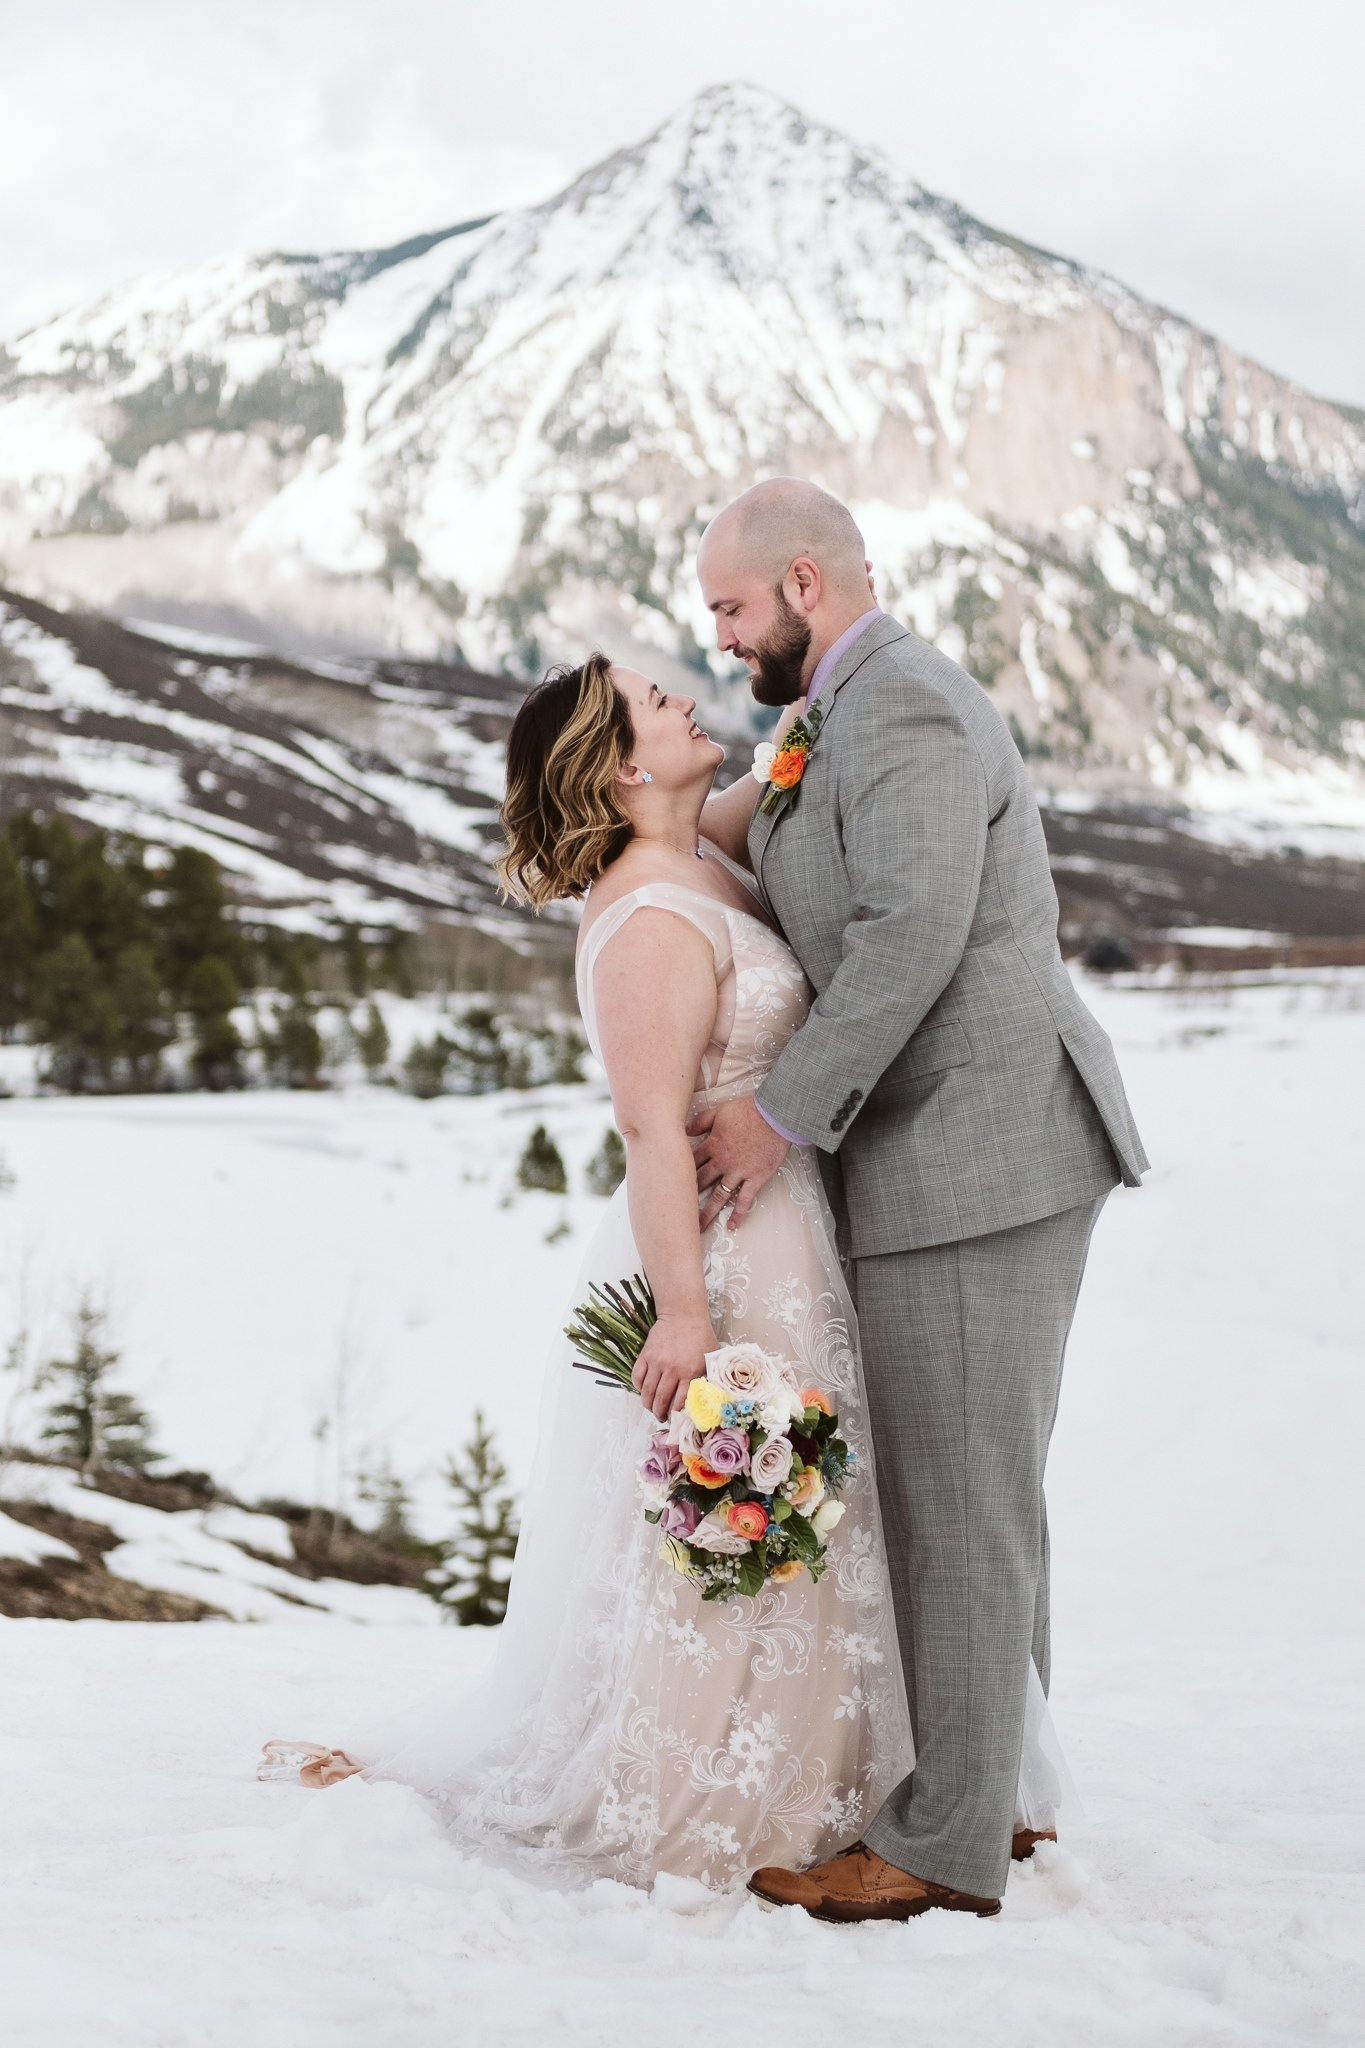 Bride and groom portraits at winter elopement in Crested Butte, snow-covered mountain wedding photos